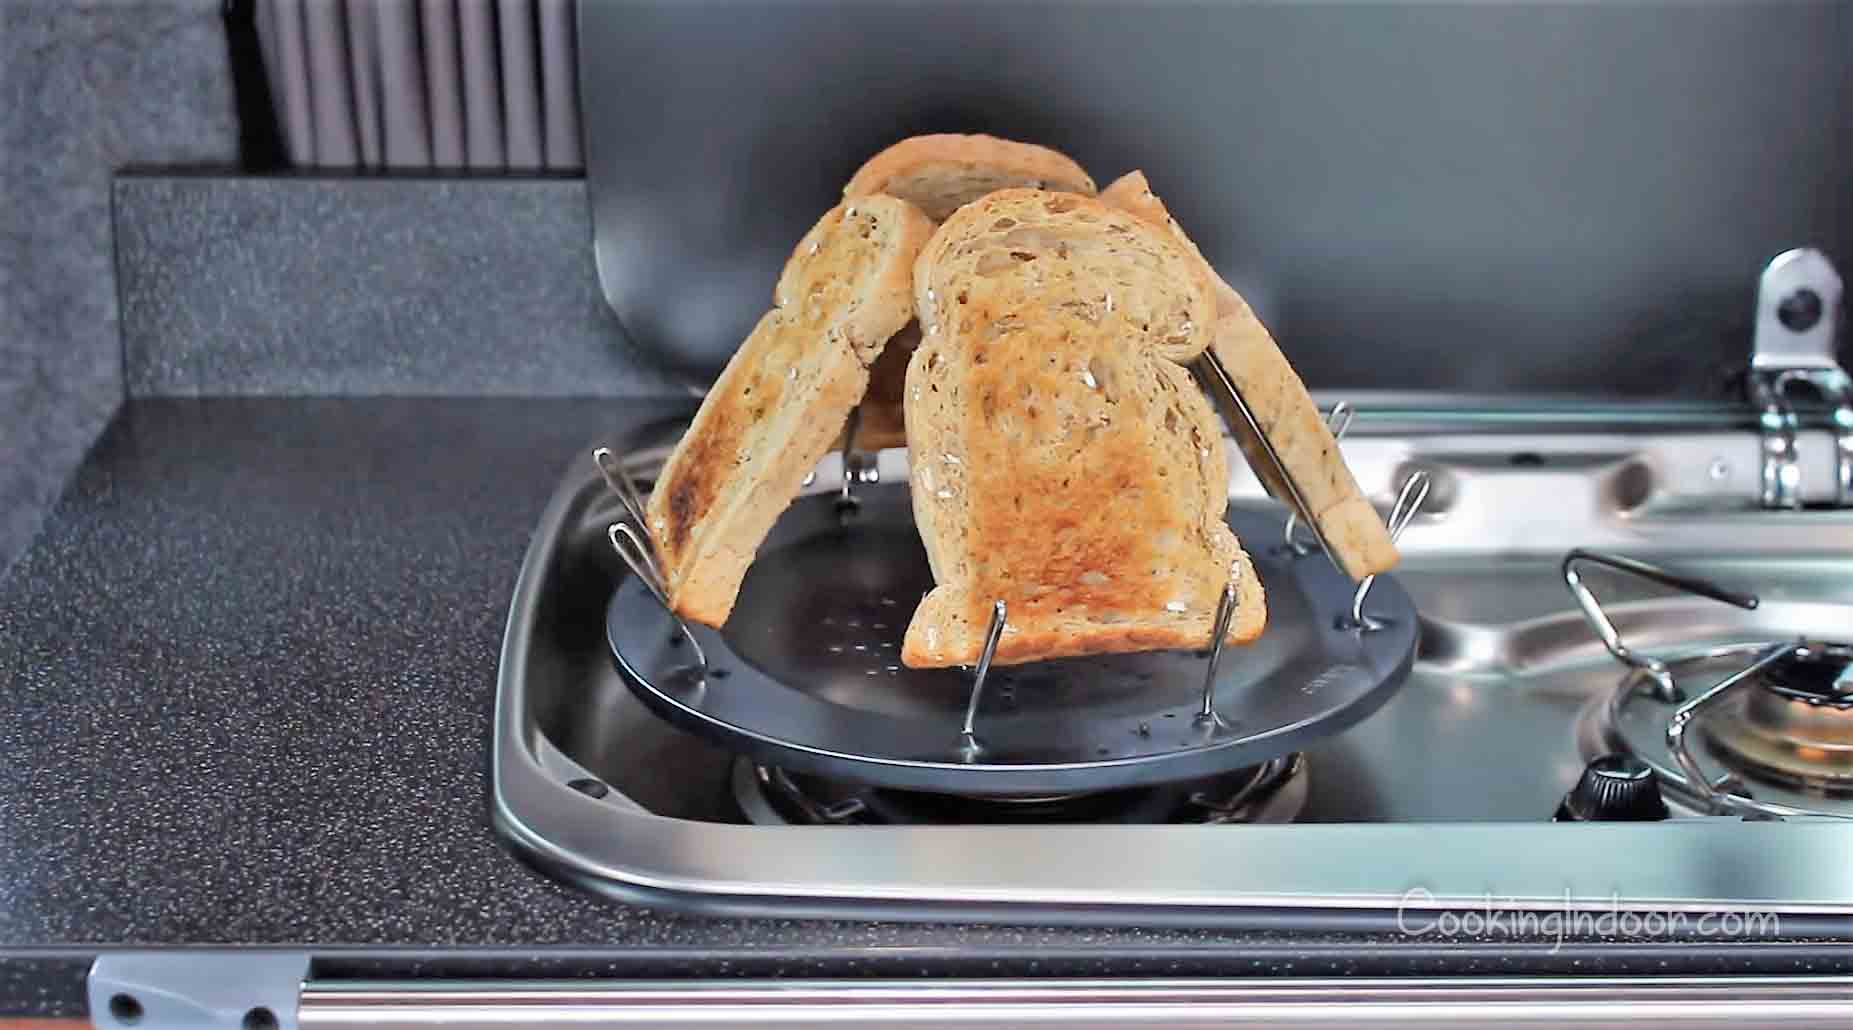 Best non electric toaster